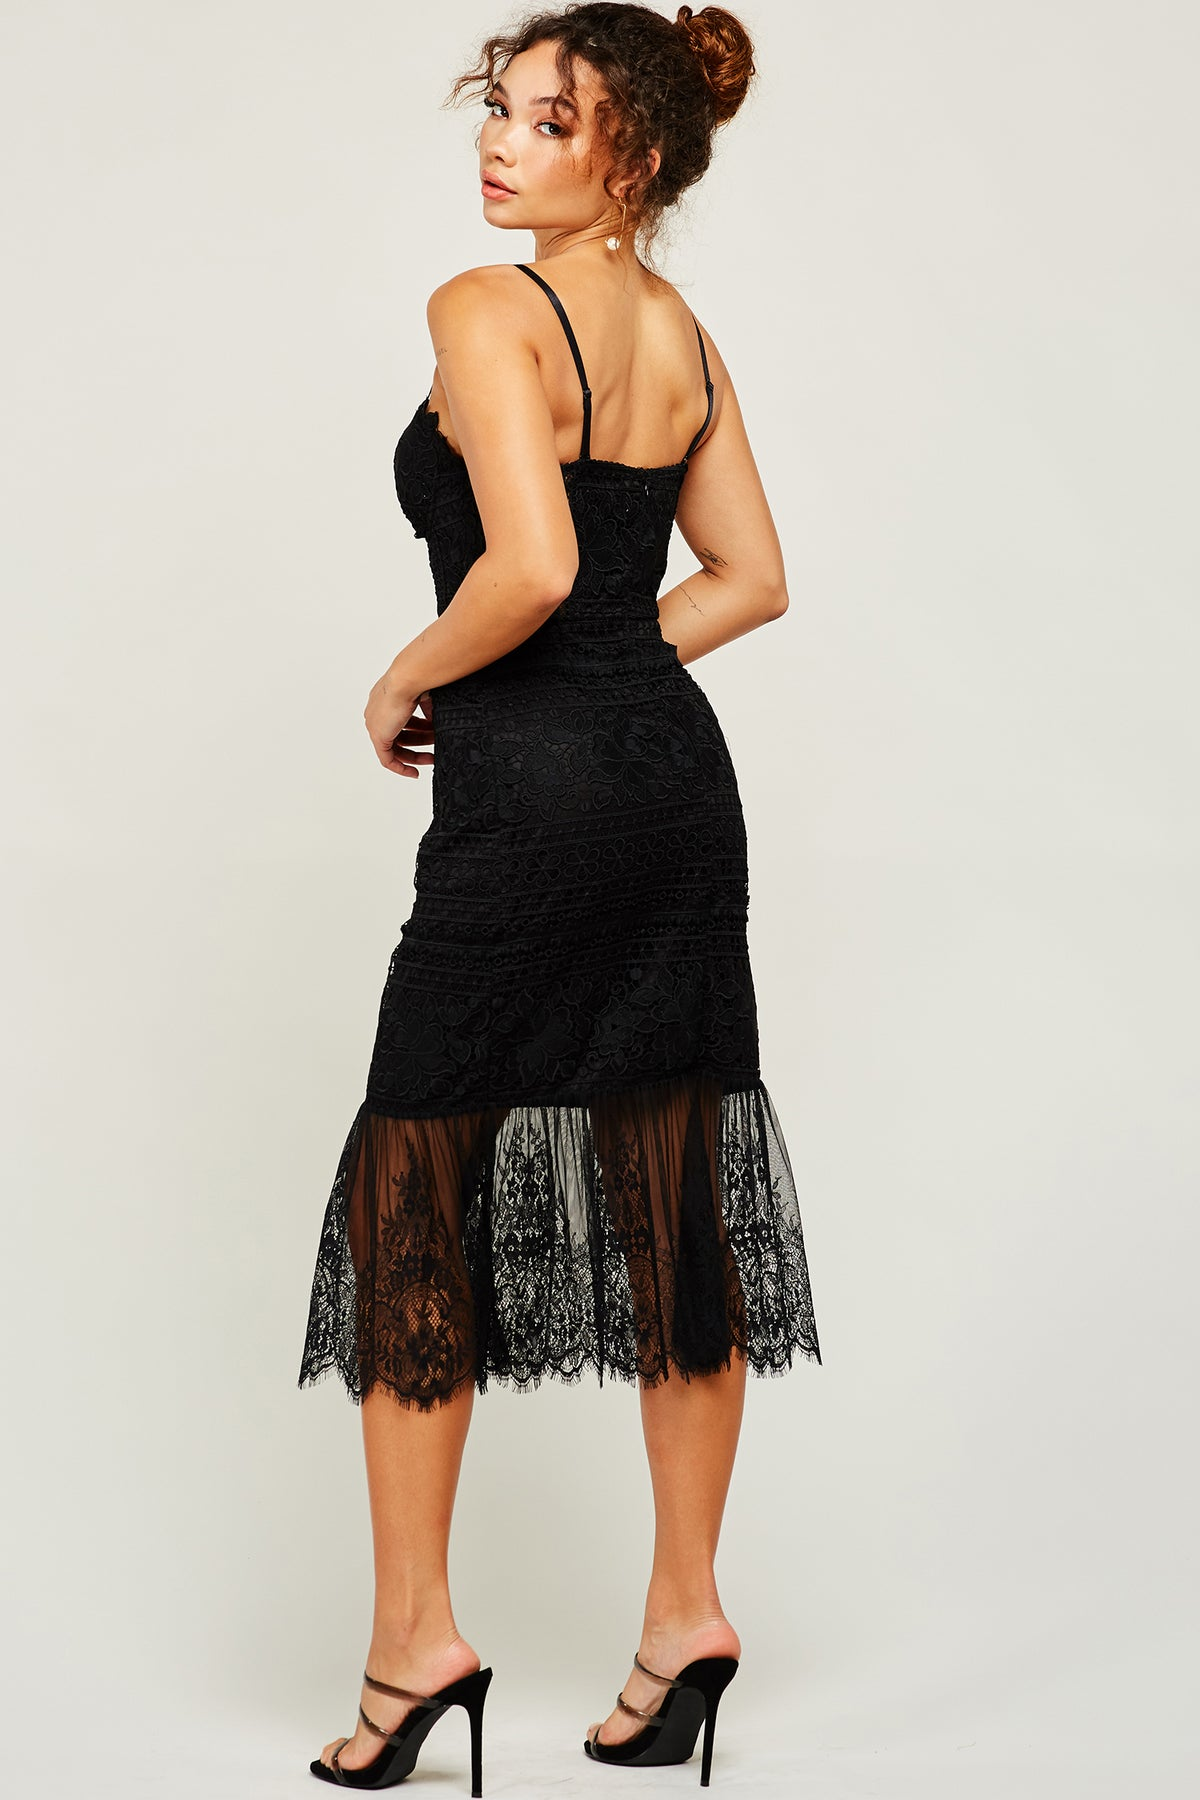 Dark Romance Lace Midi Dress - Geegeebae